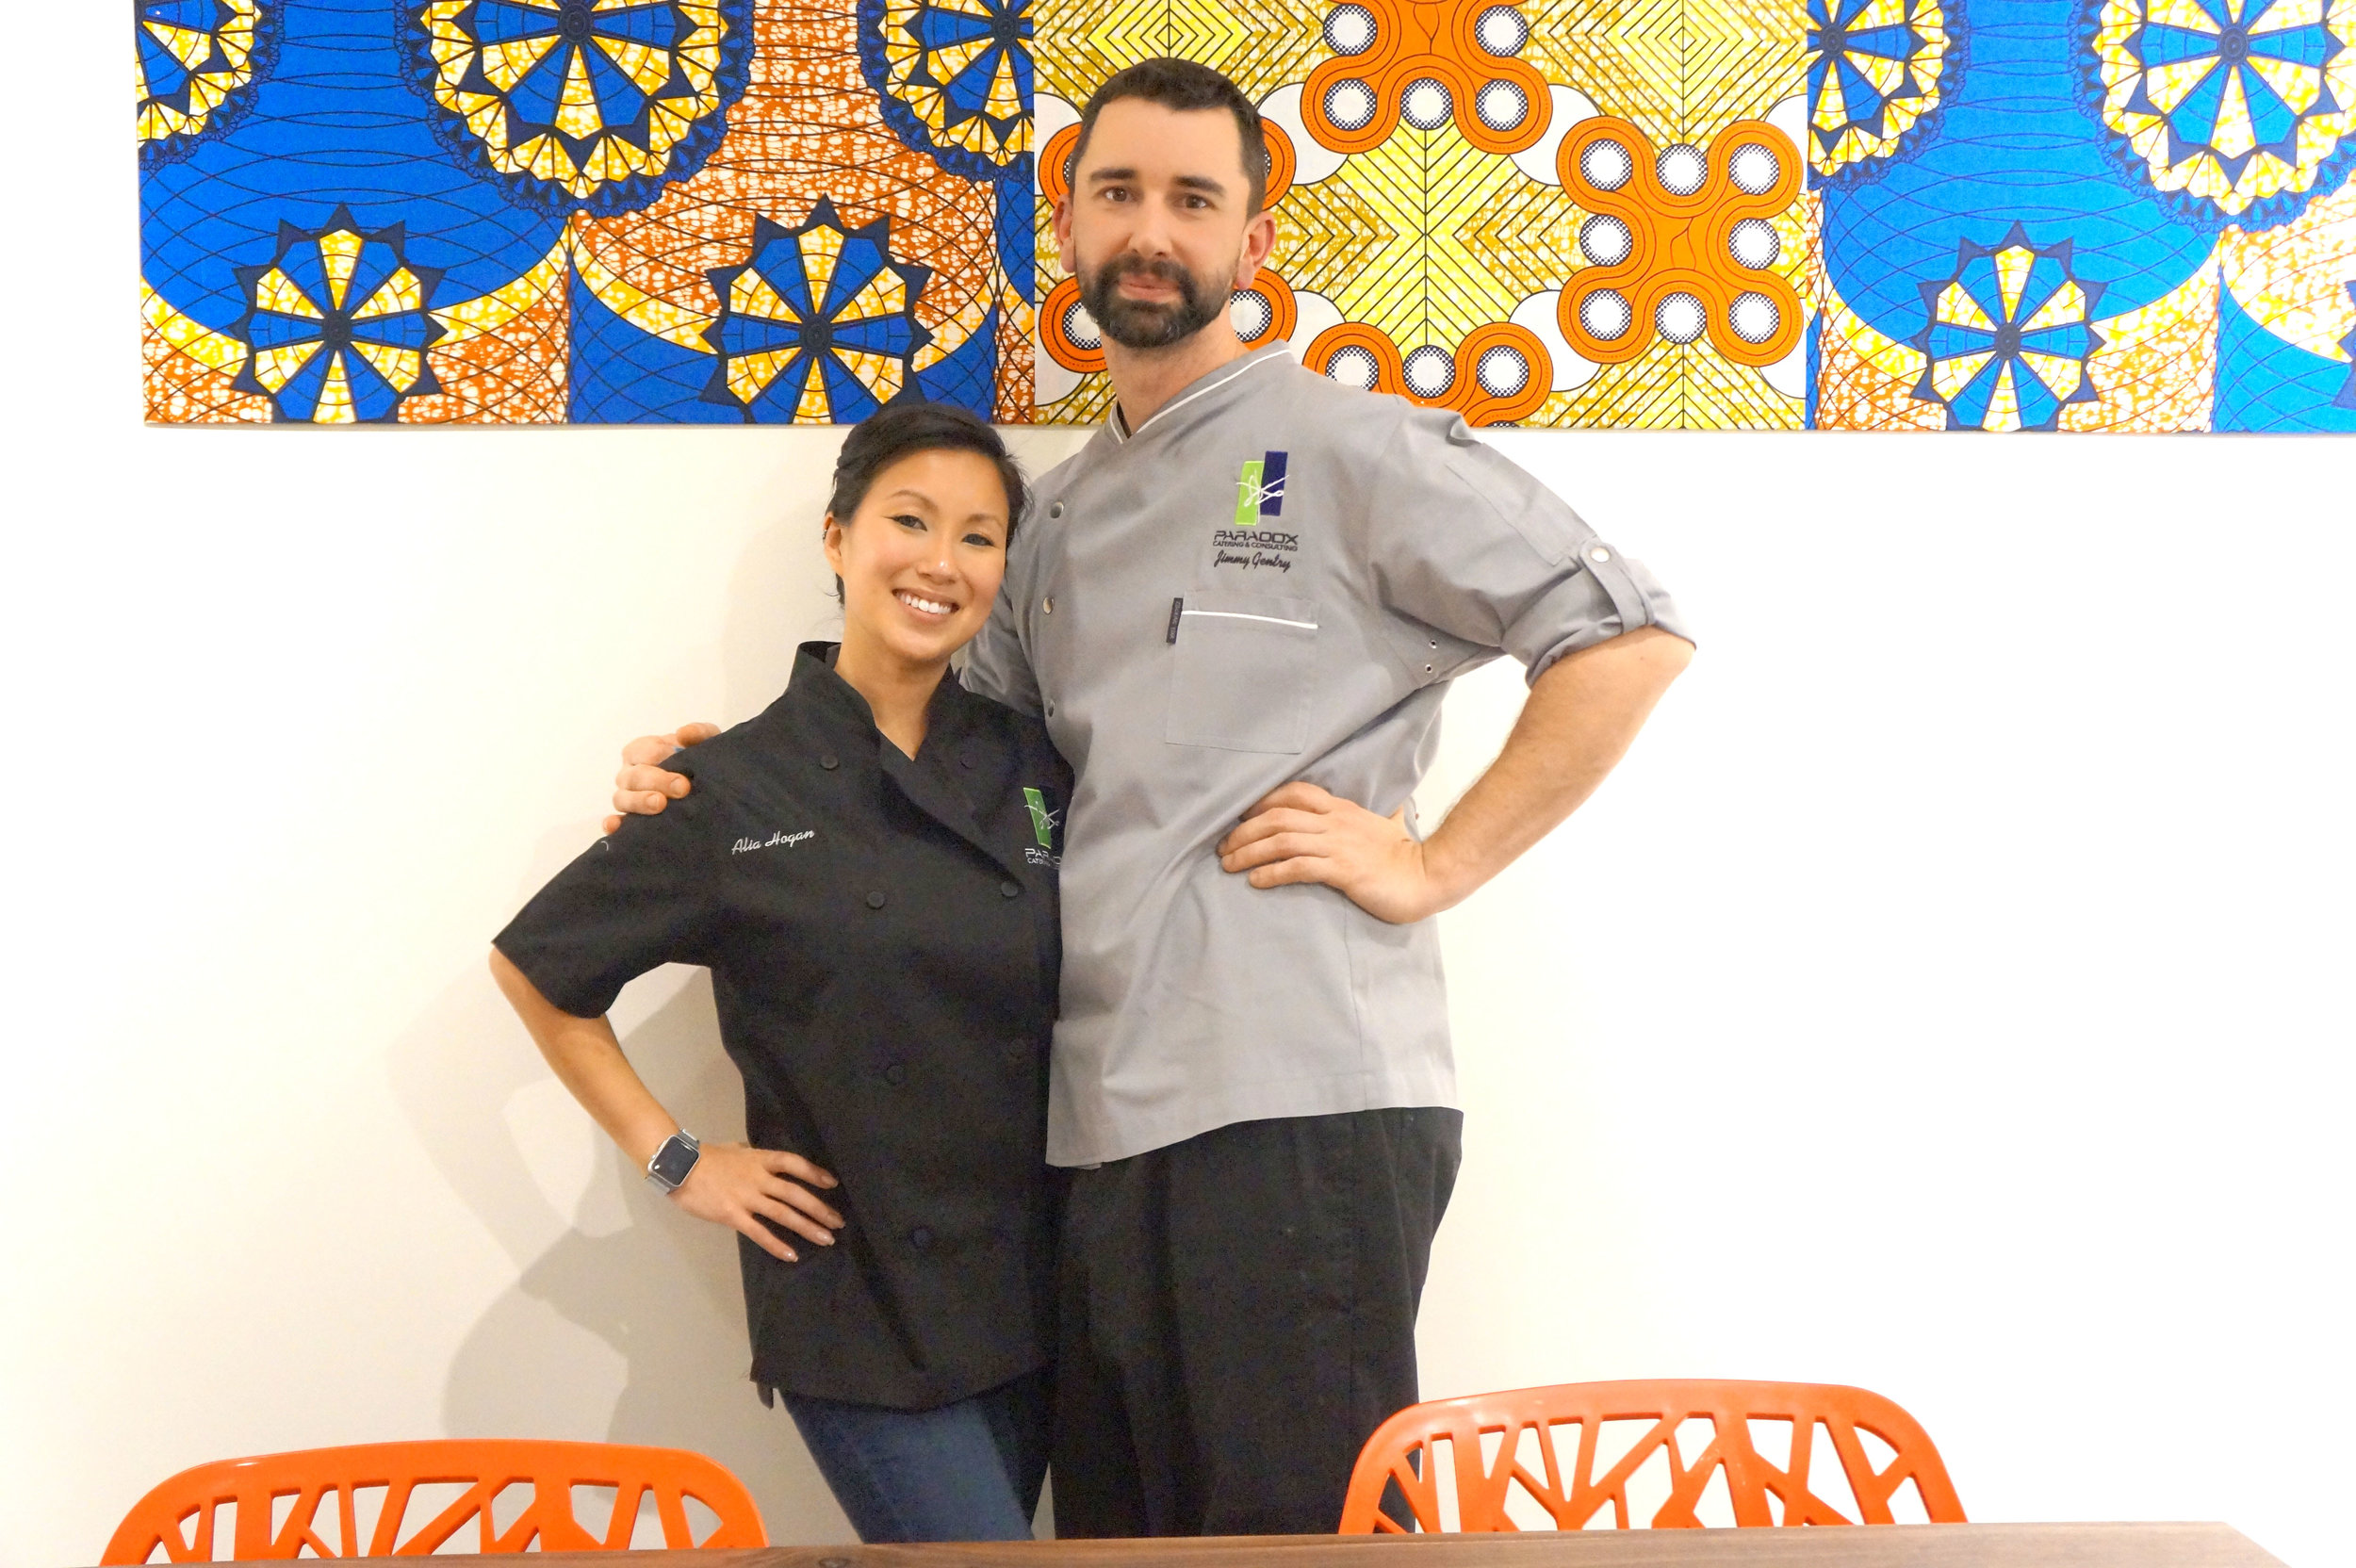 Andrea Fenise, Memphis Food Blooger, interviews Chef Jimmy Gentry and owner Alia Hogan of Cafe Brooks by Paradox at Brooks Museum